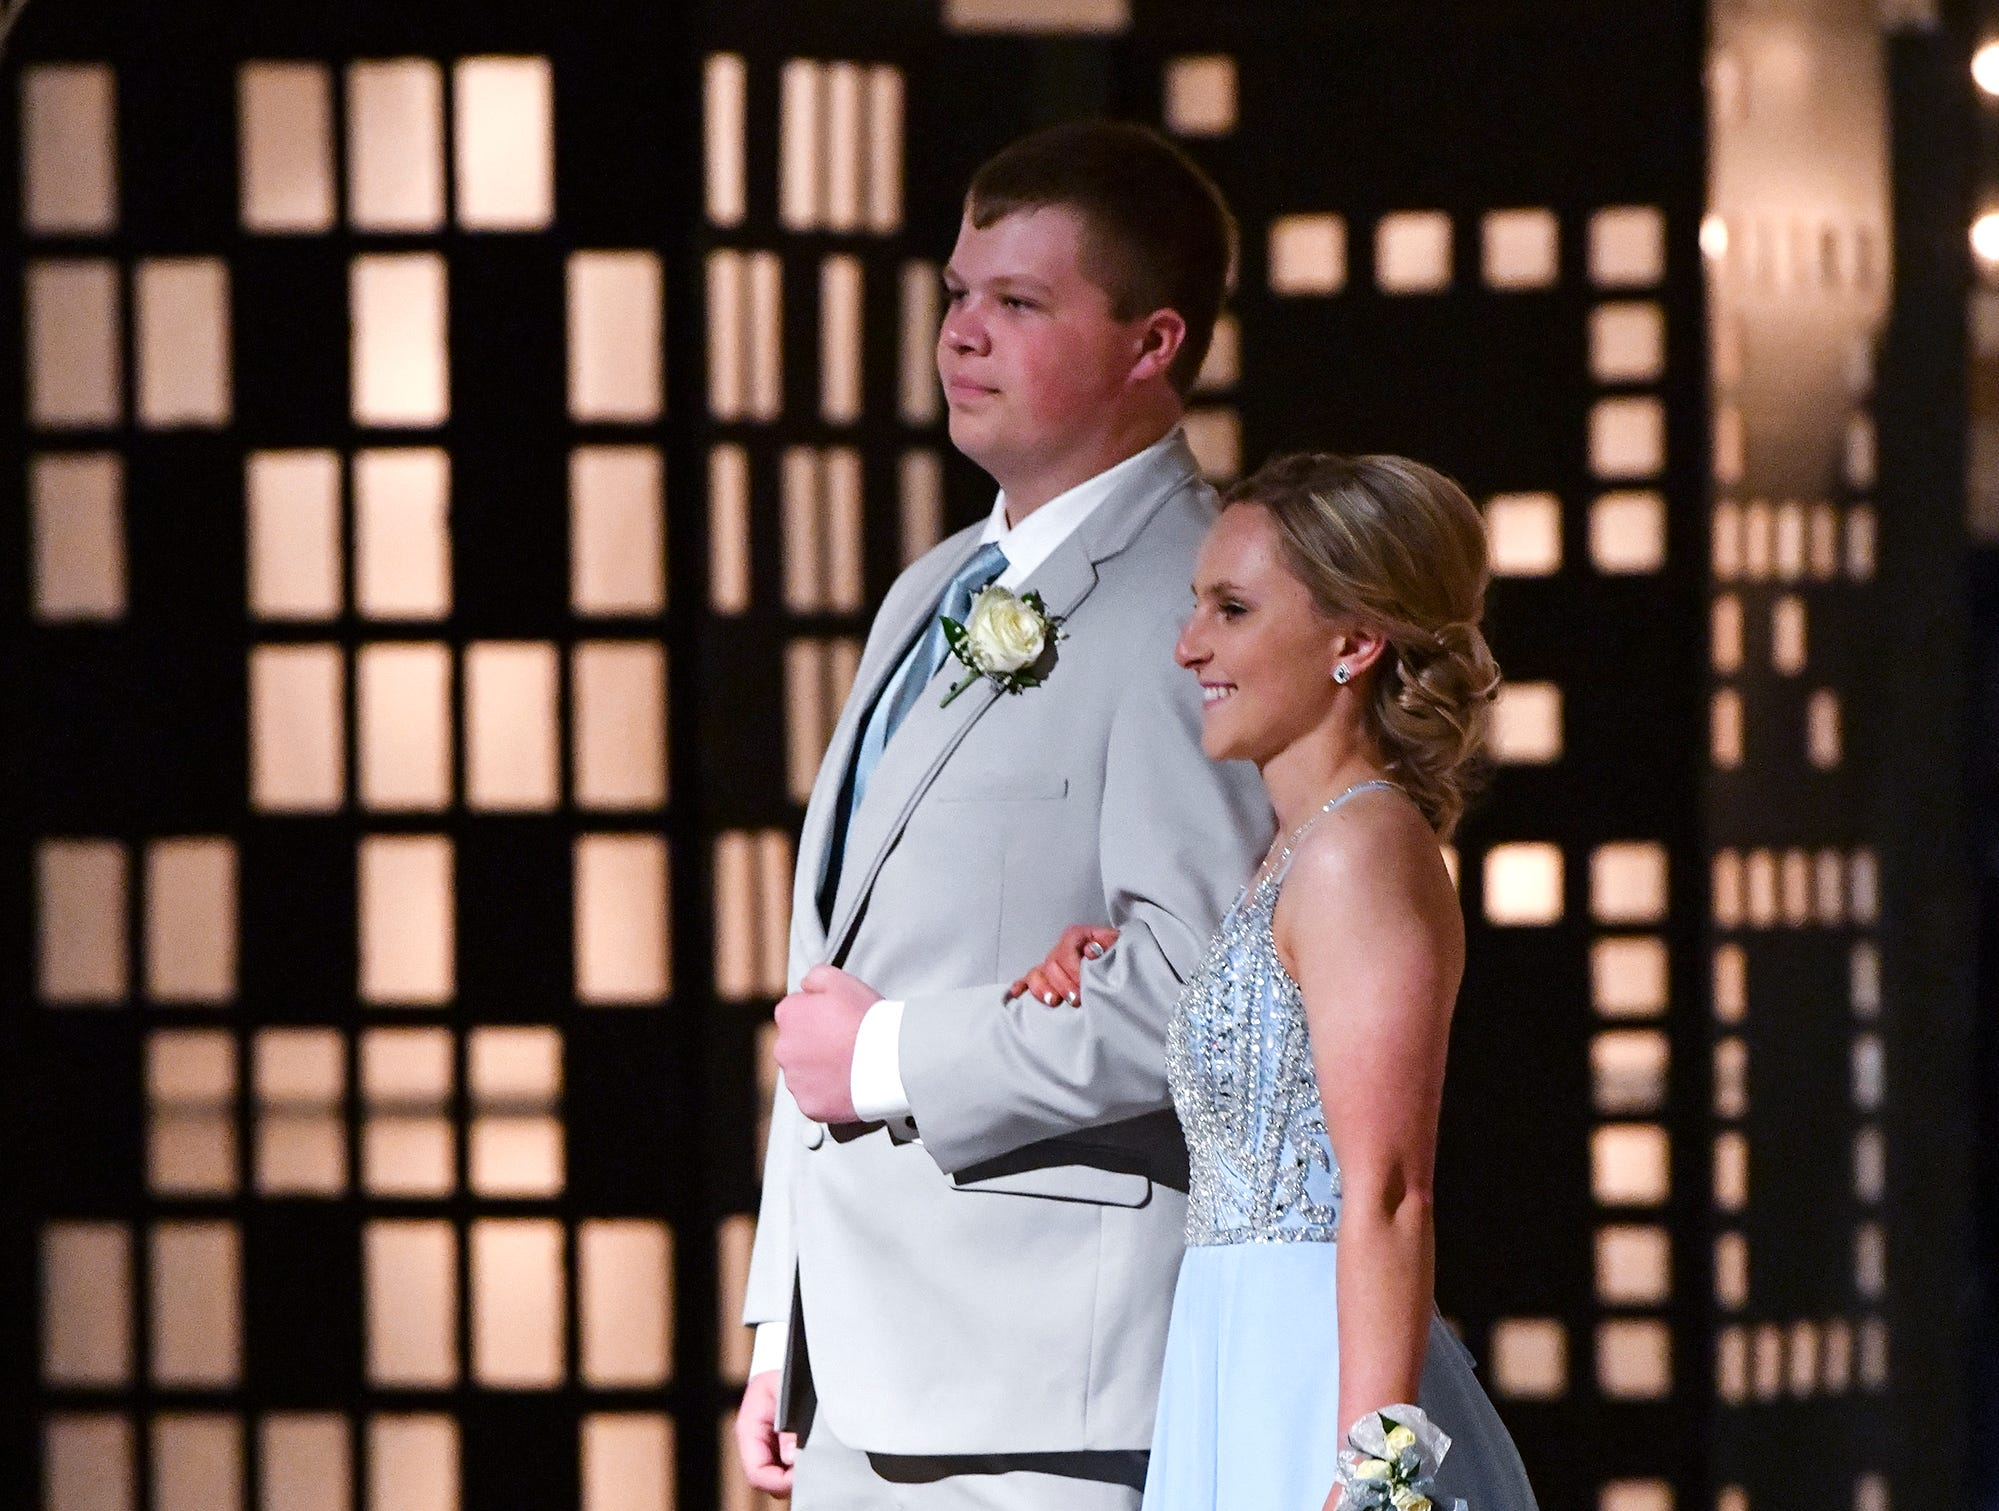 Couples pose for photos while walking down the prom grand march route Saturday, April 27, at Foley High School.